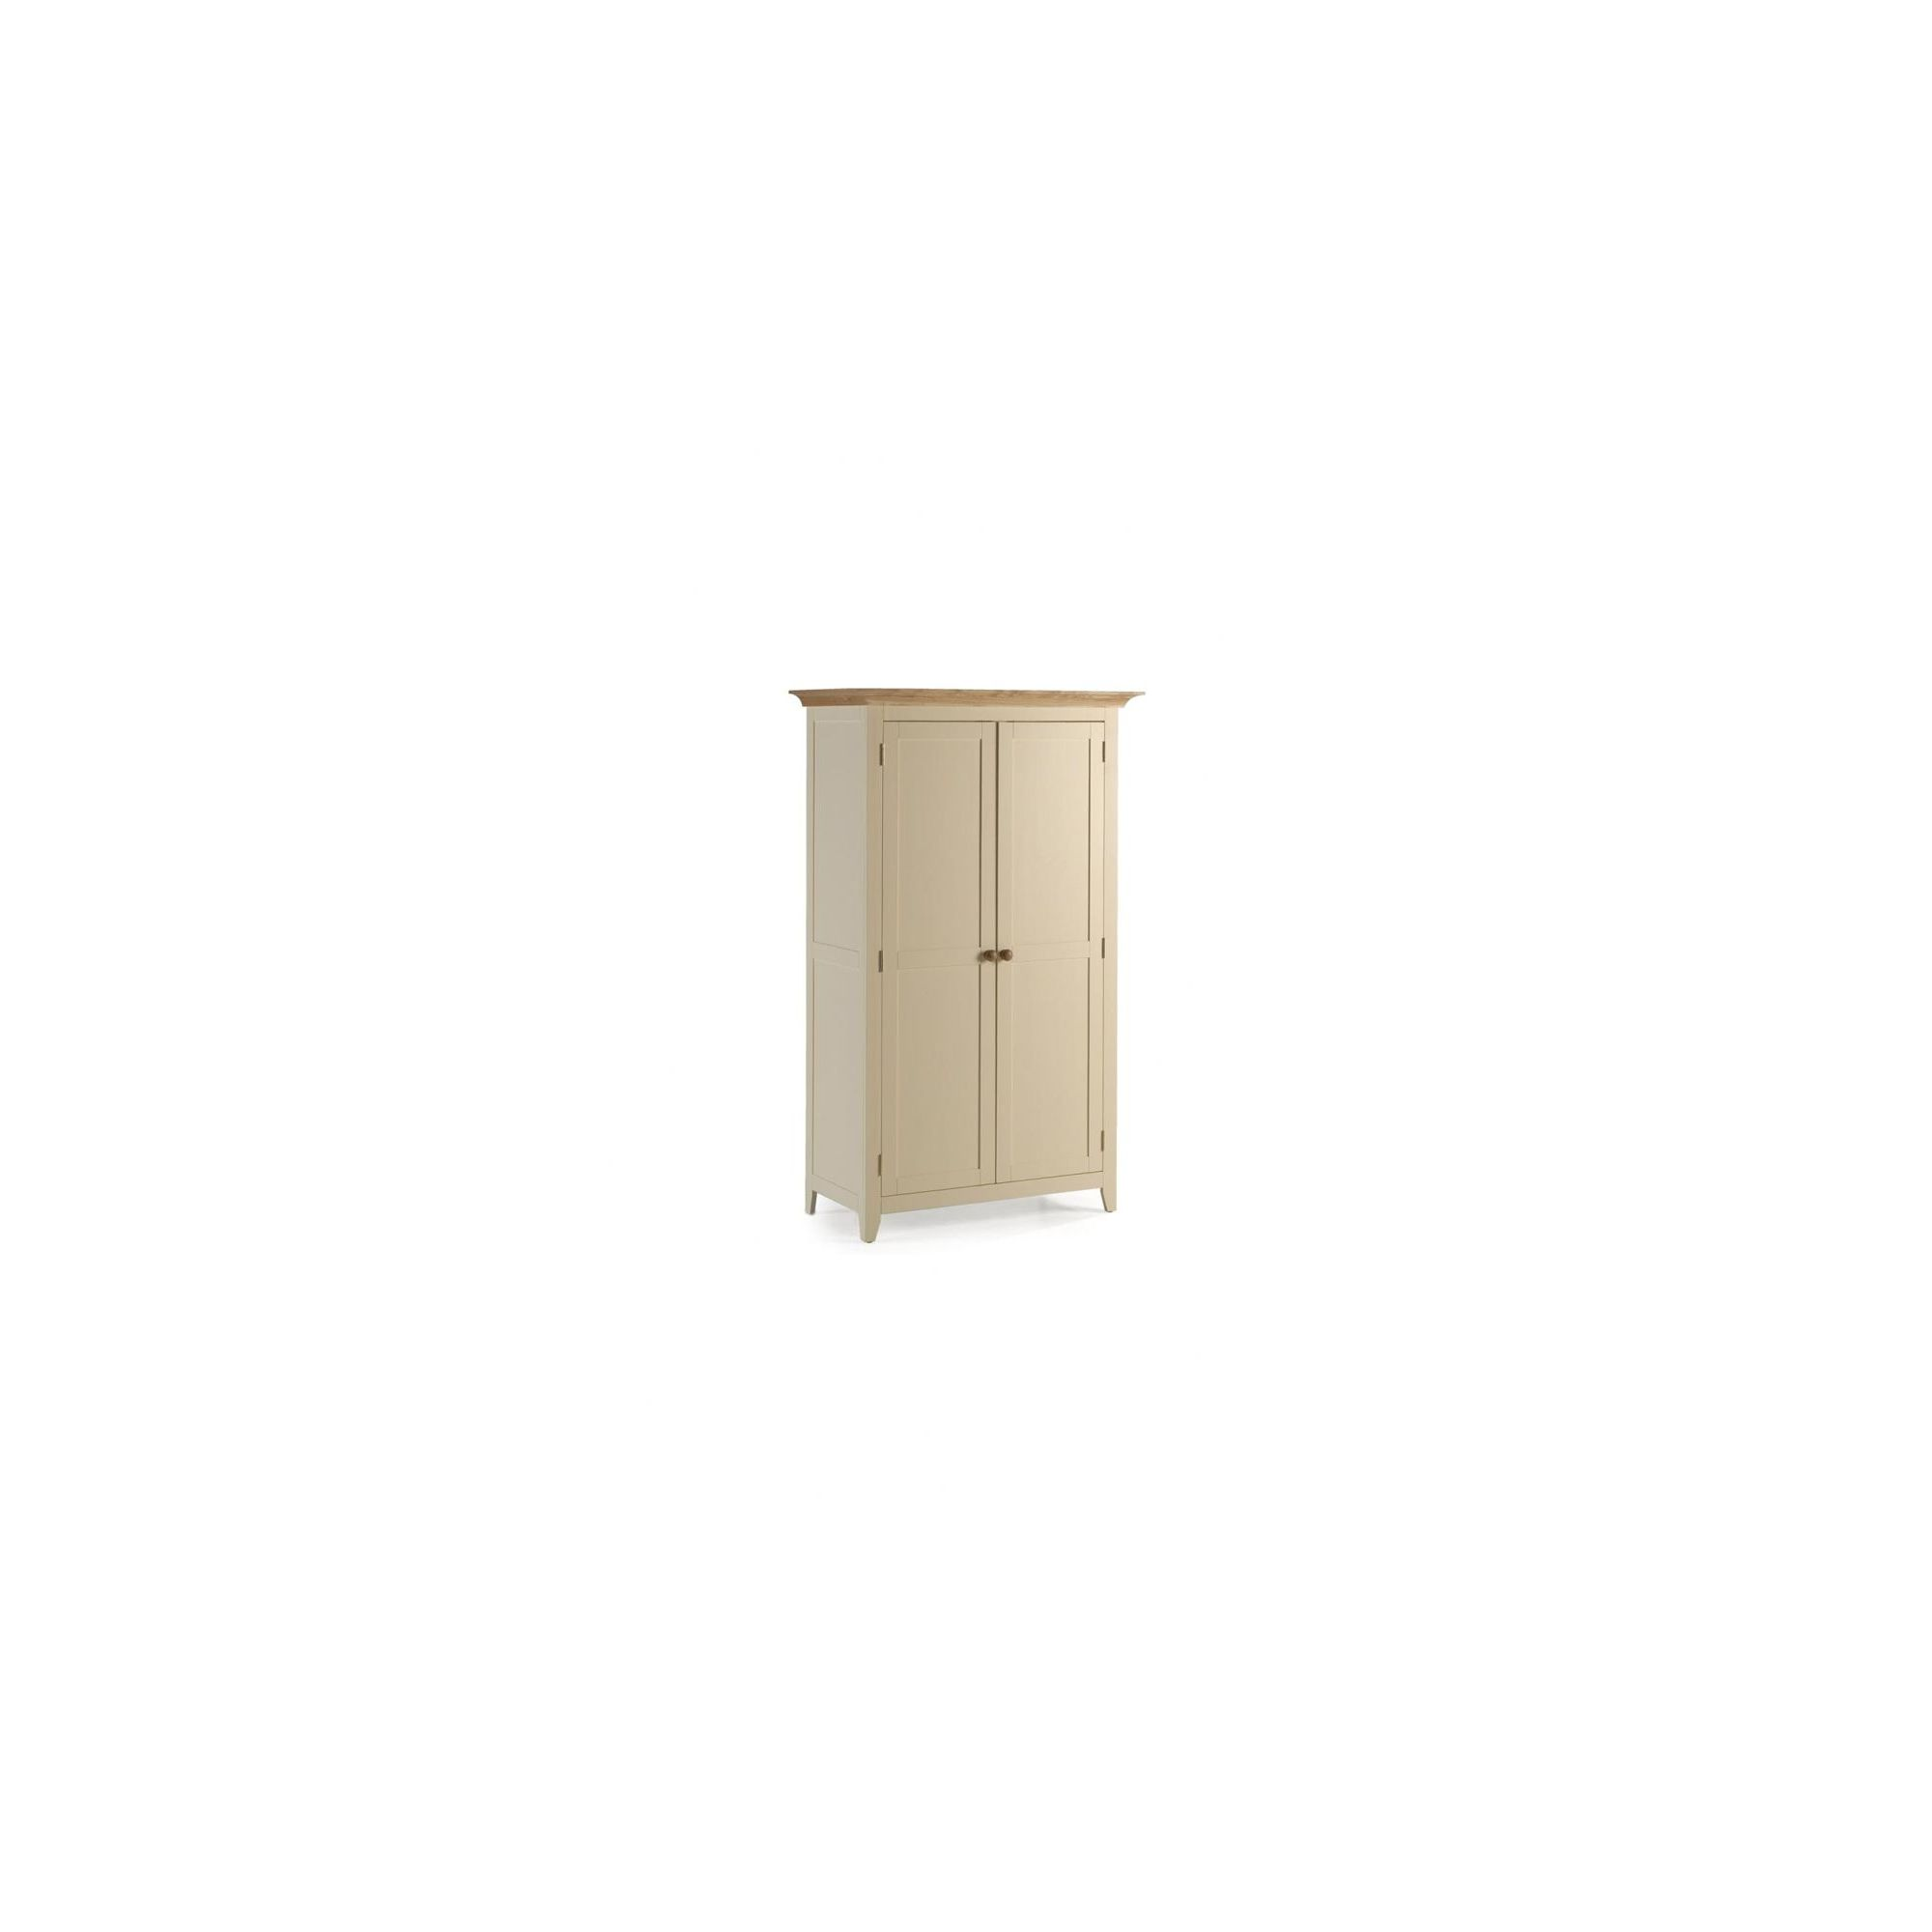 Ametis Camden Painted Pine and Ash Full Hanging Wardrobe in Painted Ivory at Tesco Direct